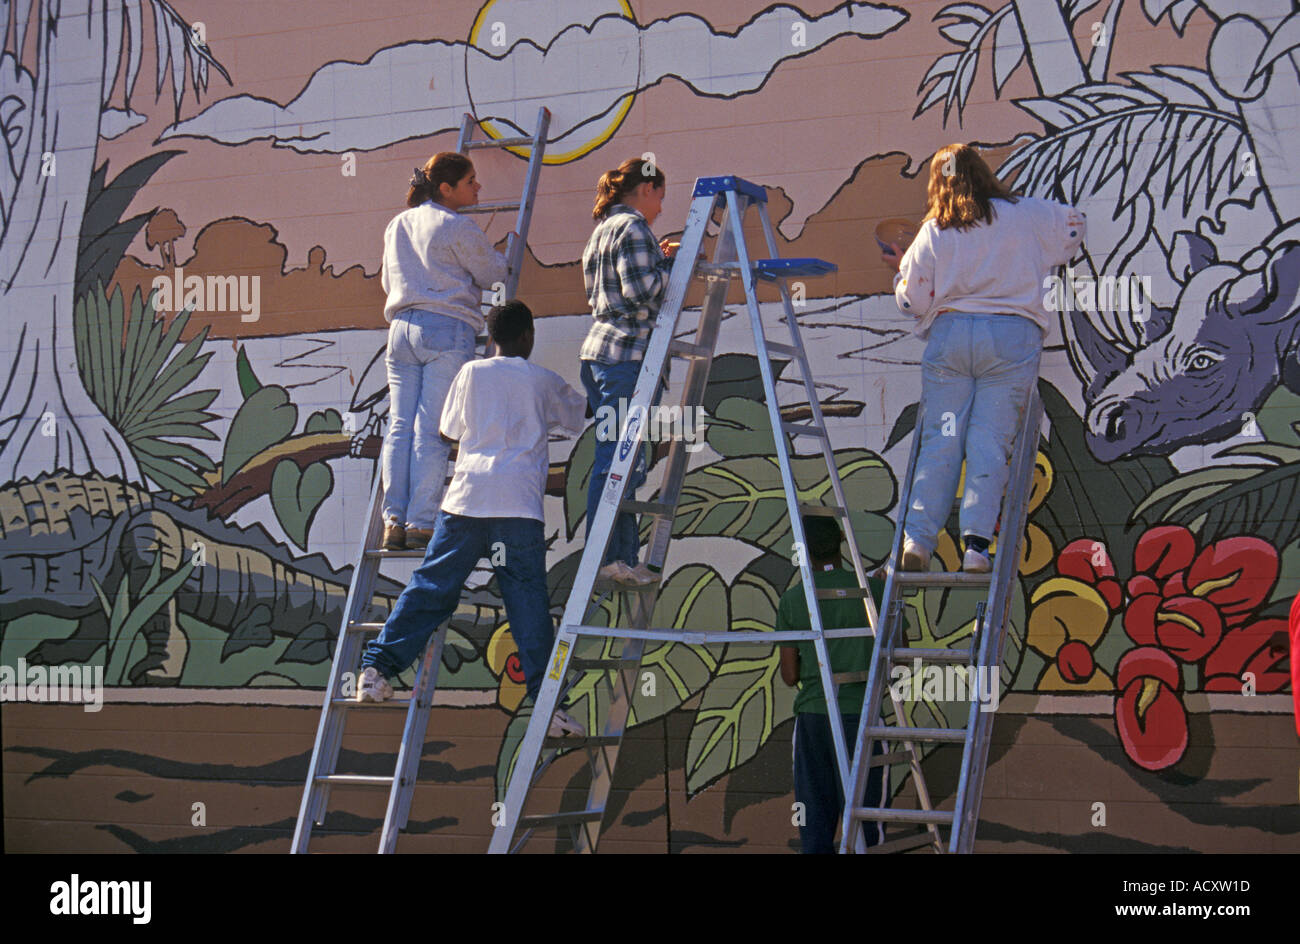 Mural on wall choice image home wall decoration ideas youth paint mural on wall between detroit and grosse pointe stock youth paint mural on wall amipublicfo Gallery